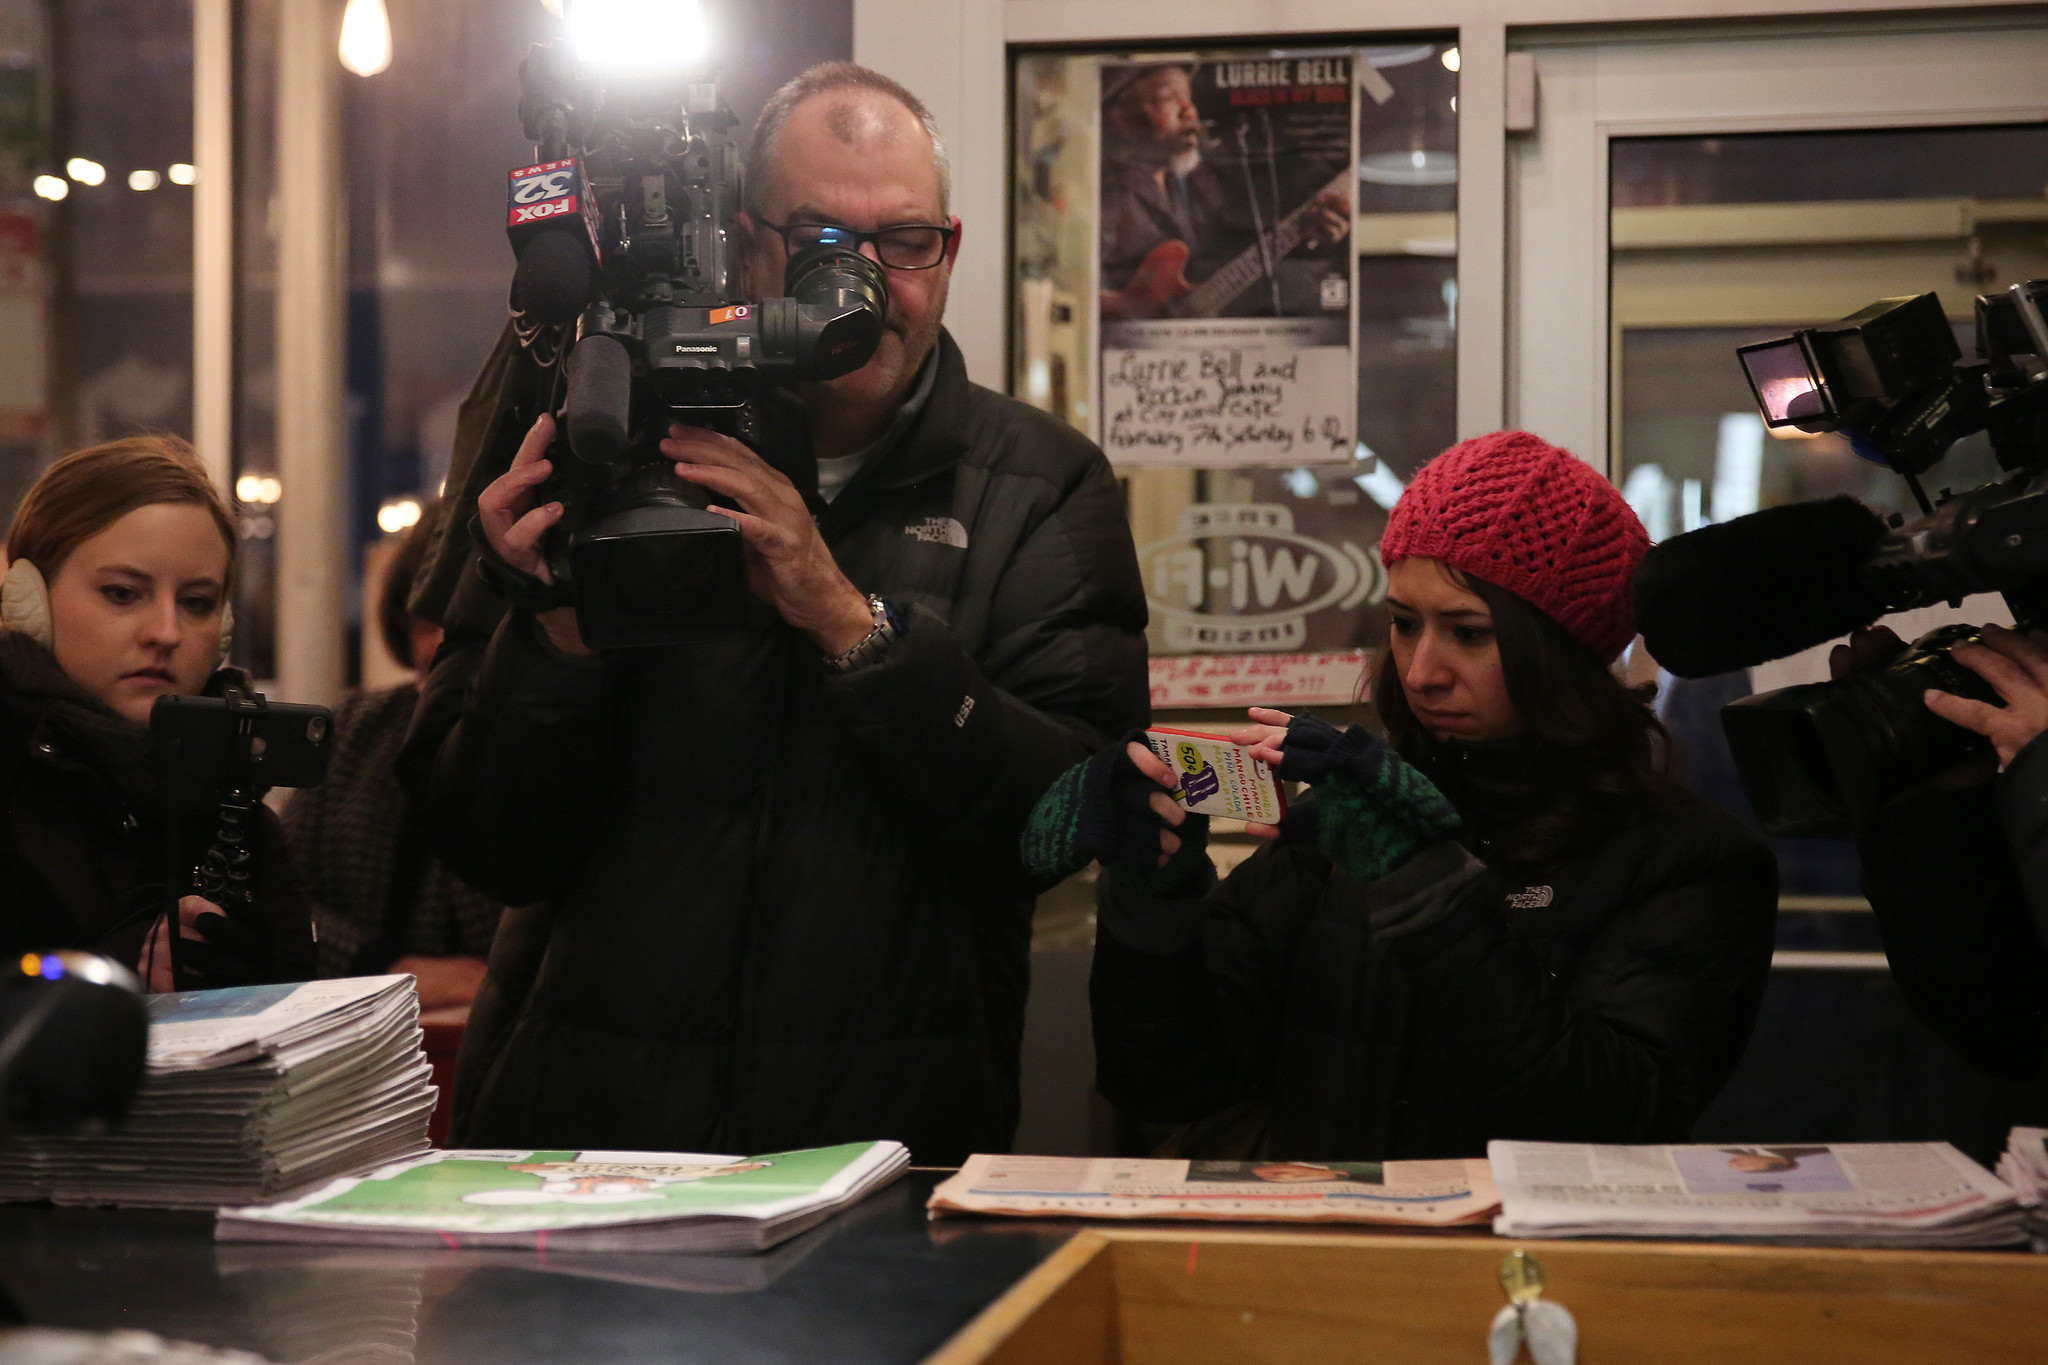 Charlie Hebdo available in Chicago on Friday